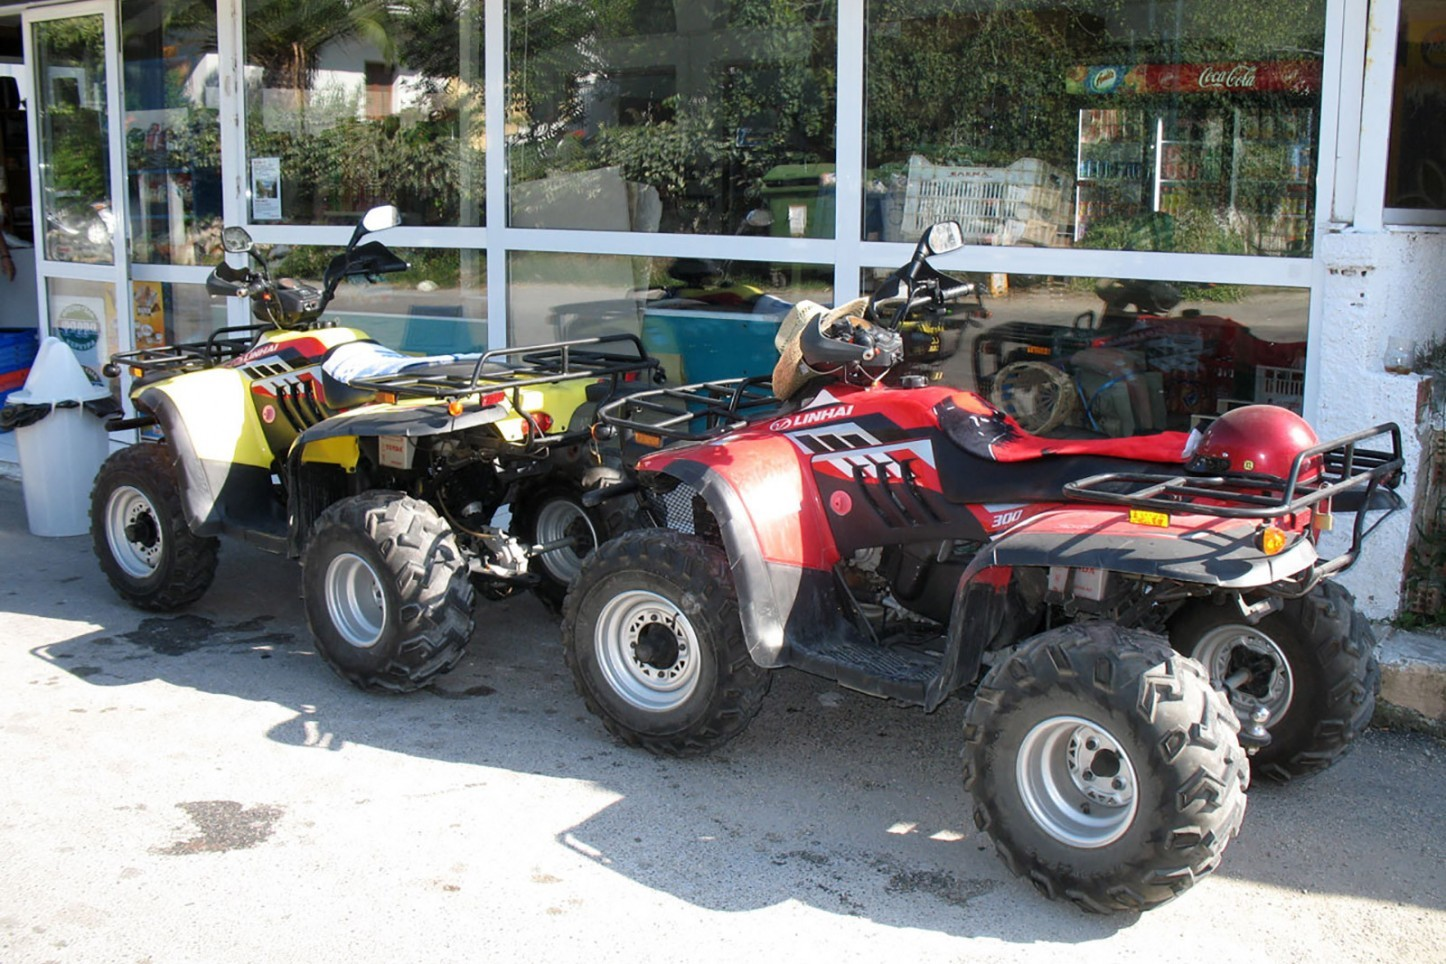 ATV - Phang Nga and Phuket